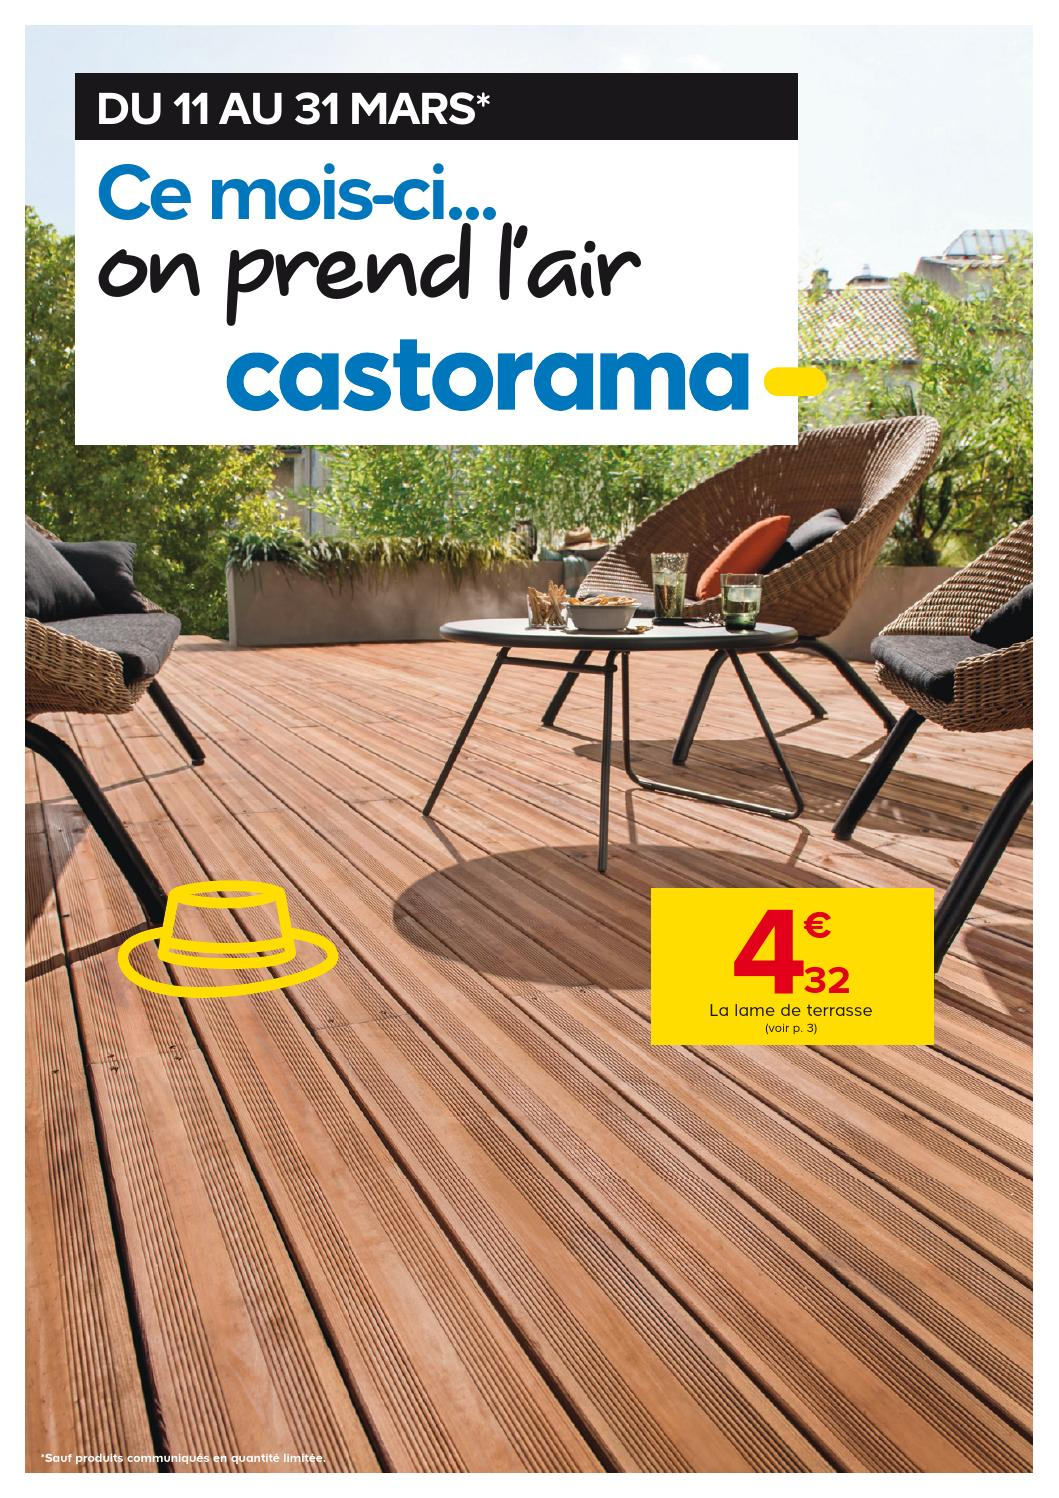 Castorama Catalogue 11 31mars2015 By Promocatalogues Com Issuu